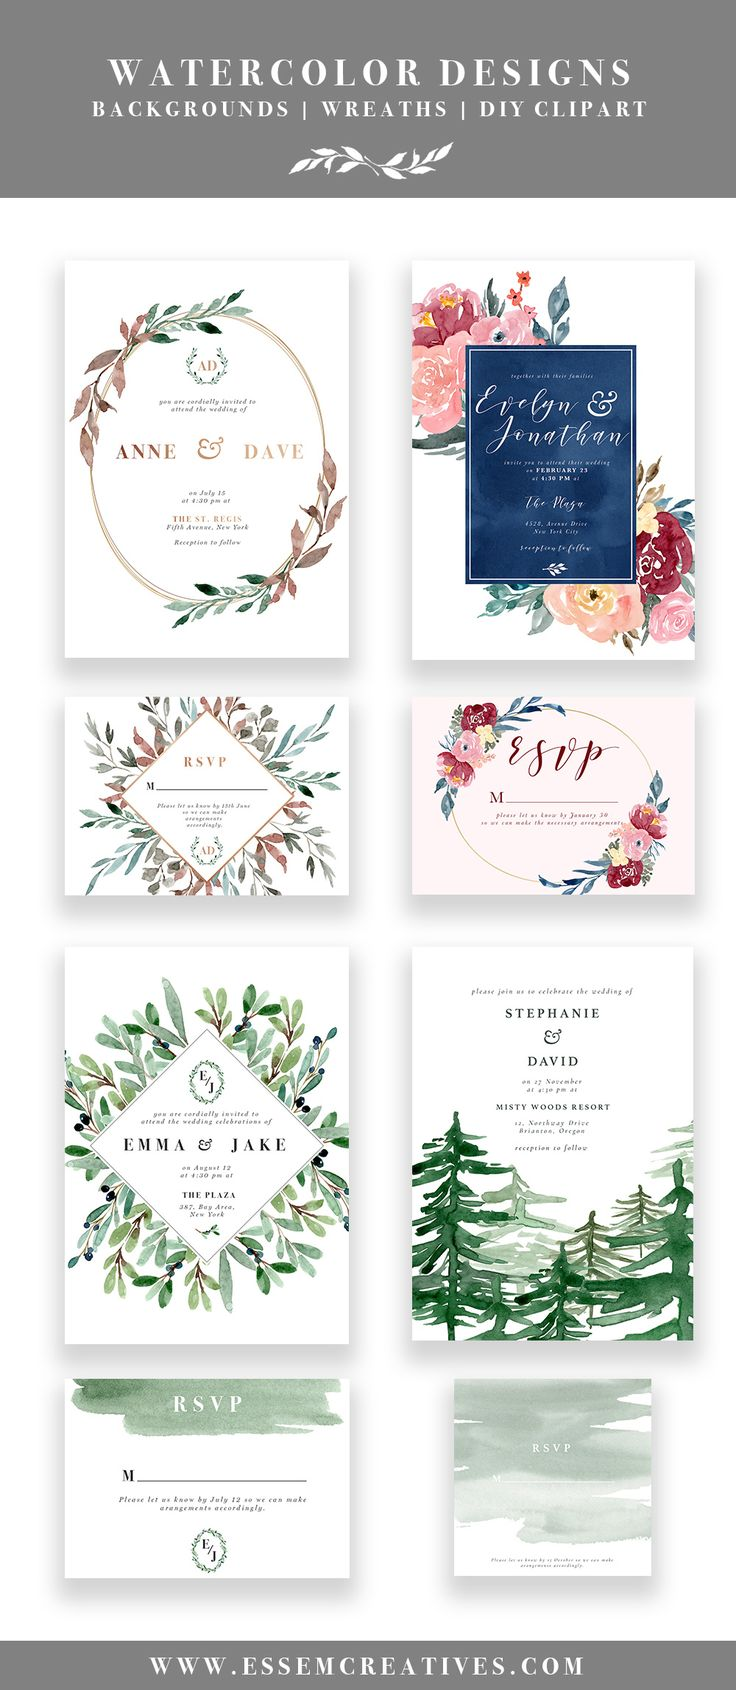 DIY Printable Watercolor wedding invitations | Watercolor Designs, Floral Watercolor Wreaths Floral Borders Digital Frames, Watercolor Flowers & Leaves Clip Art, Rustic Vintage Modern Hand Painted Wedding Stationery, Olive Branch, Burgundy Navy Blush Invitations, Forest Wedding Rustic Invitations, Cheap and Affordable Wedding Invitations | By Essem Creatives | www.essemcreatives.com |